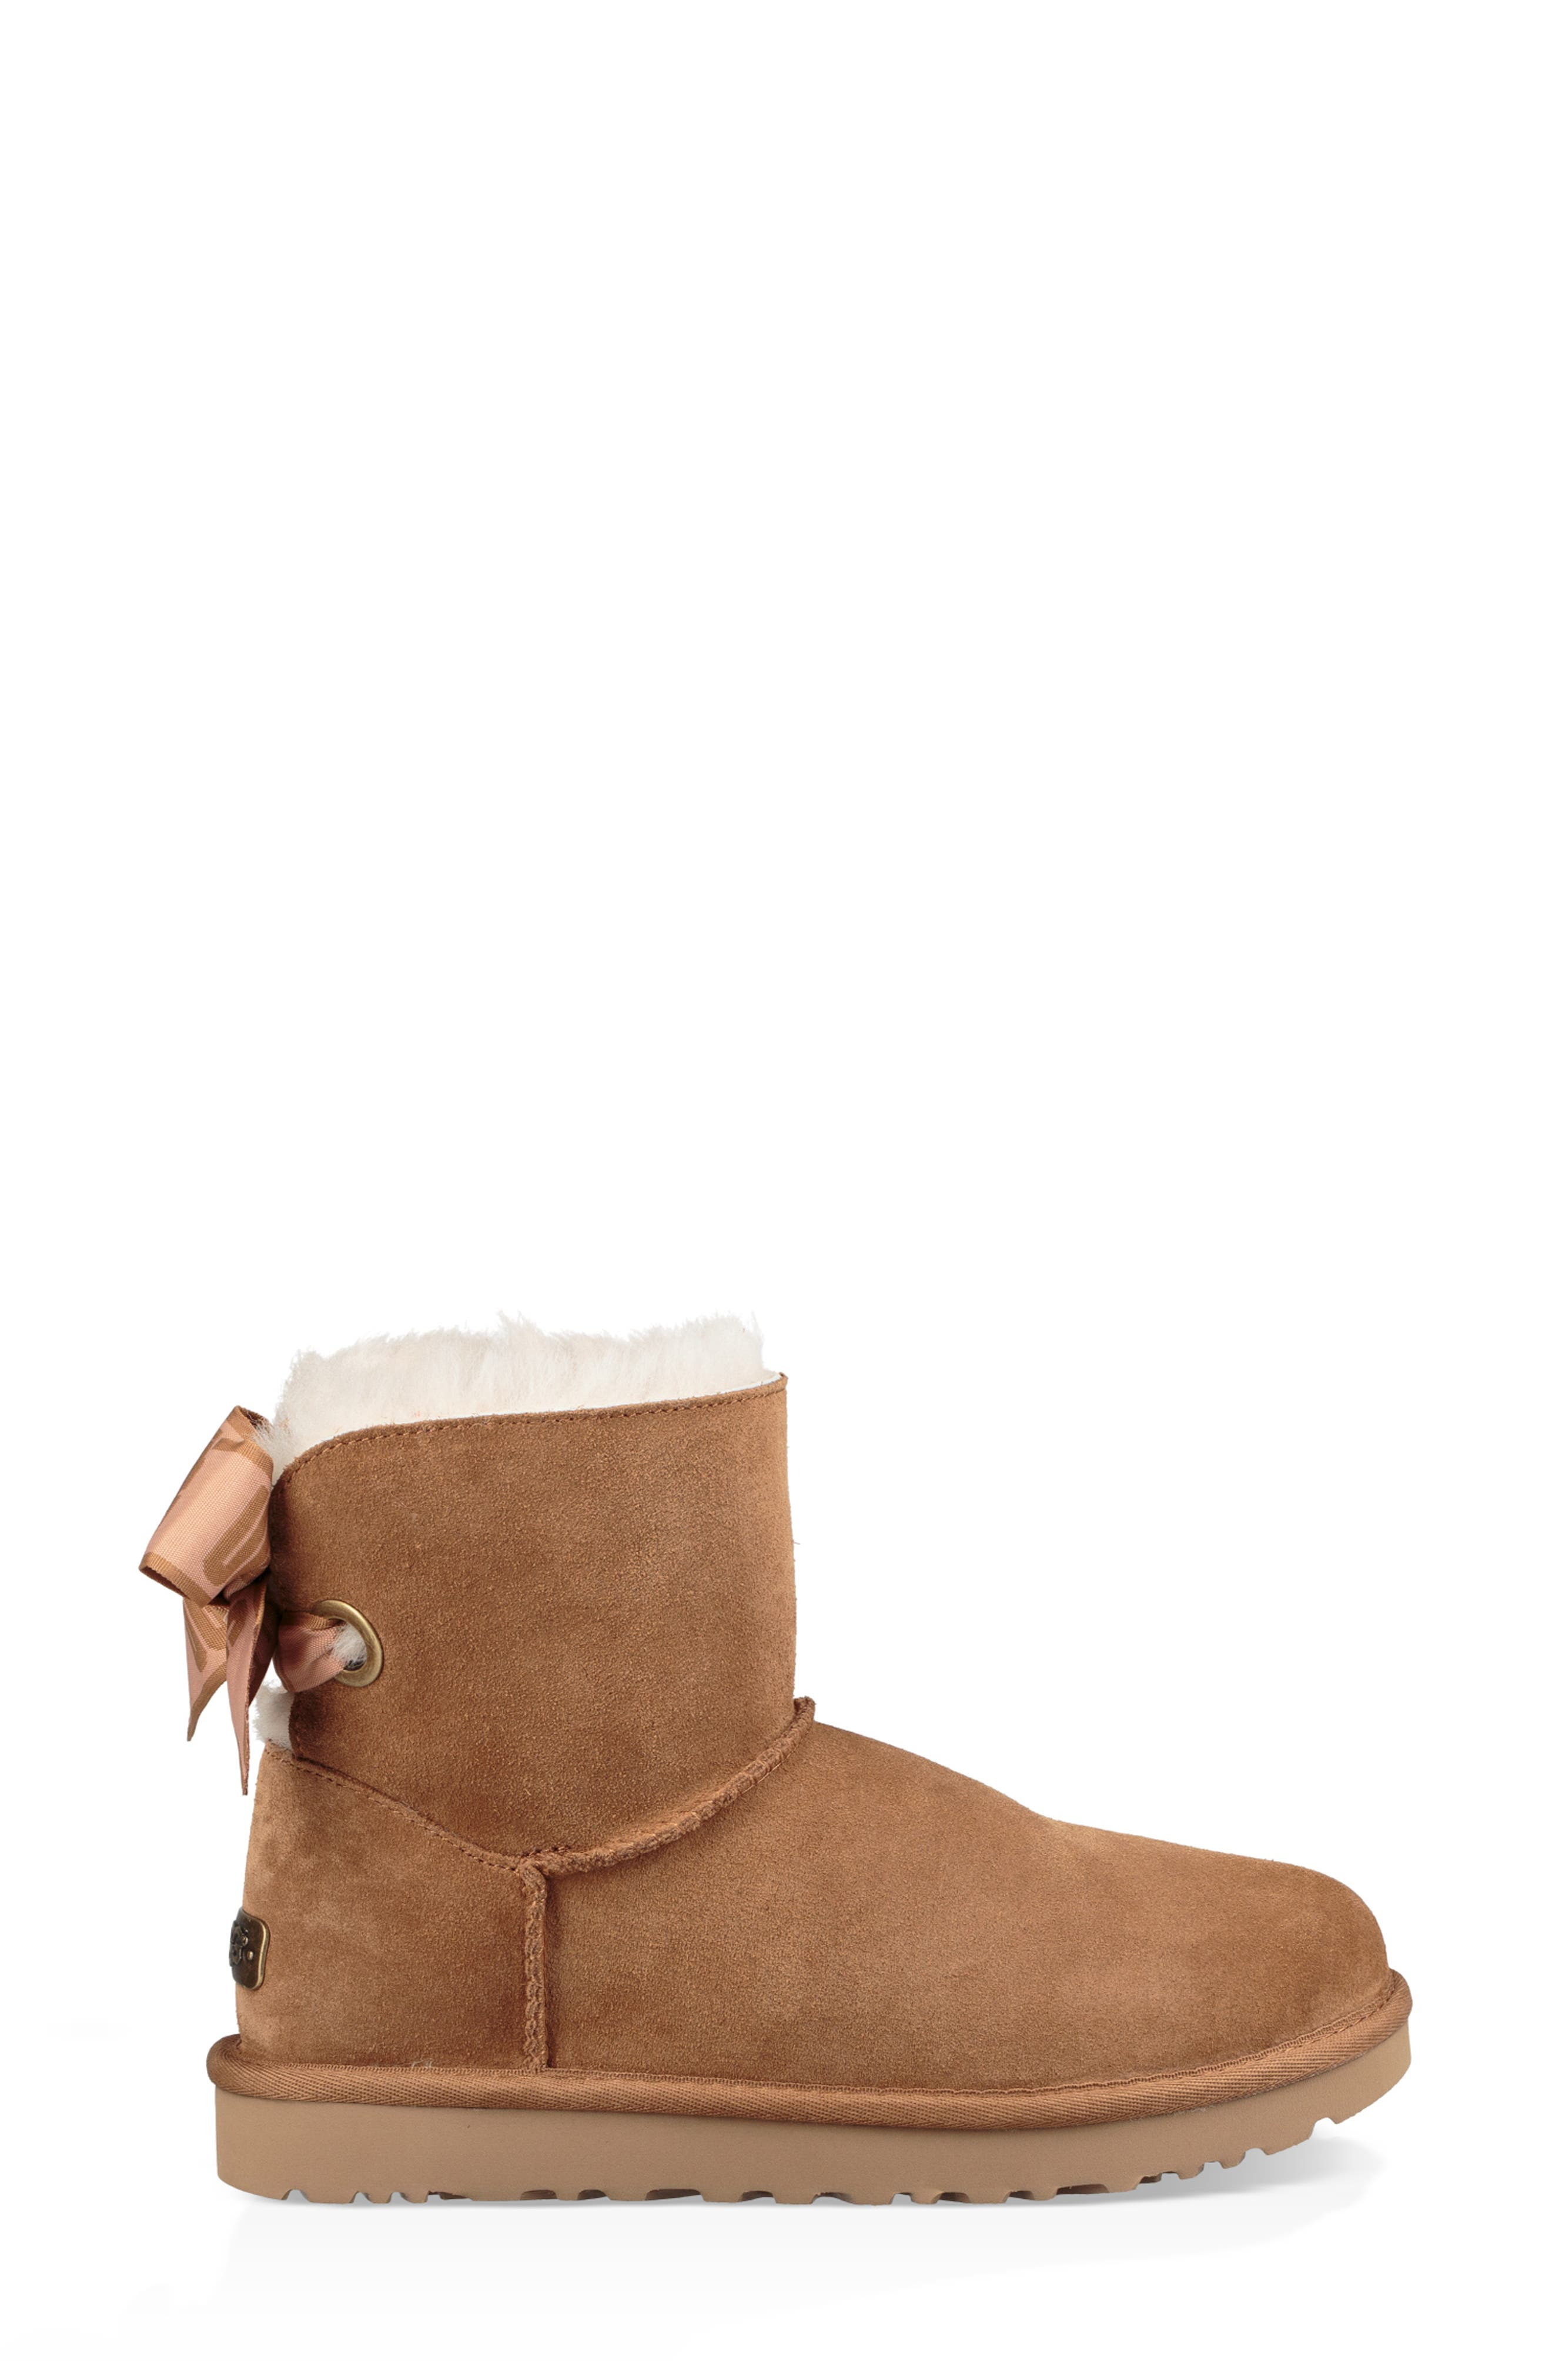 Customizable Bailey Bow Mini Genuine Shearling Bootie,                             Alternate thumbnail 8, color,                             CHESTNUT SUEDE